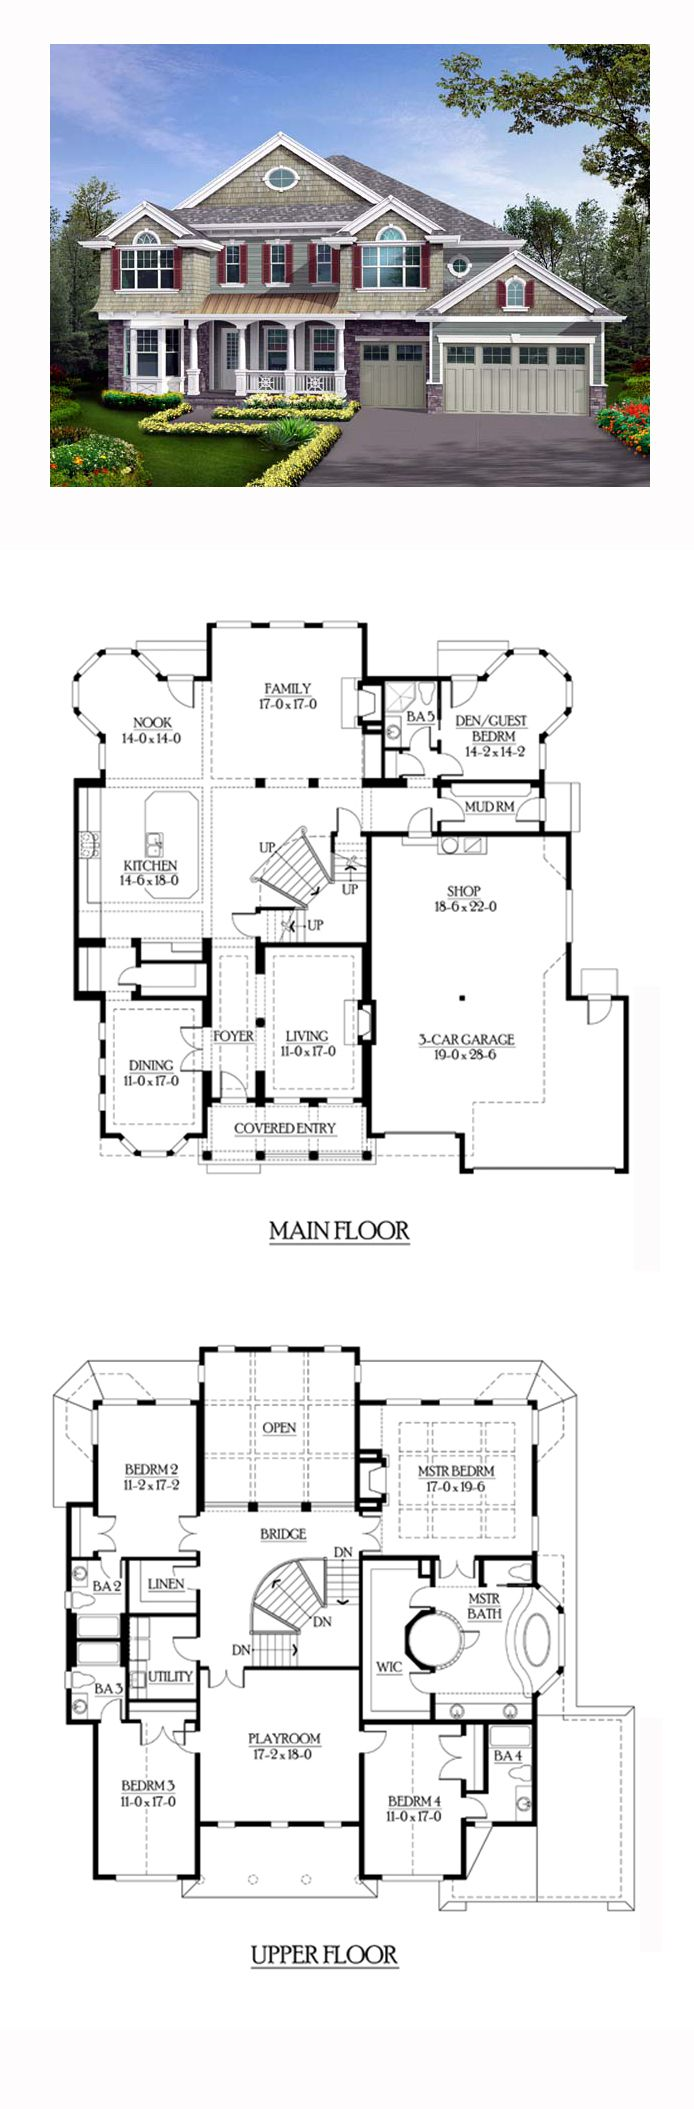 Shingle Style COOL House Plan ID chp 39375 Total Living Area